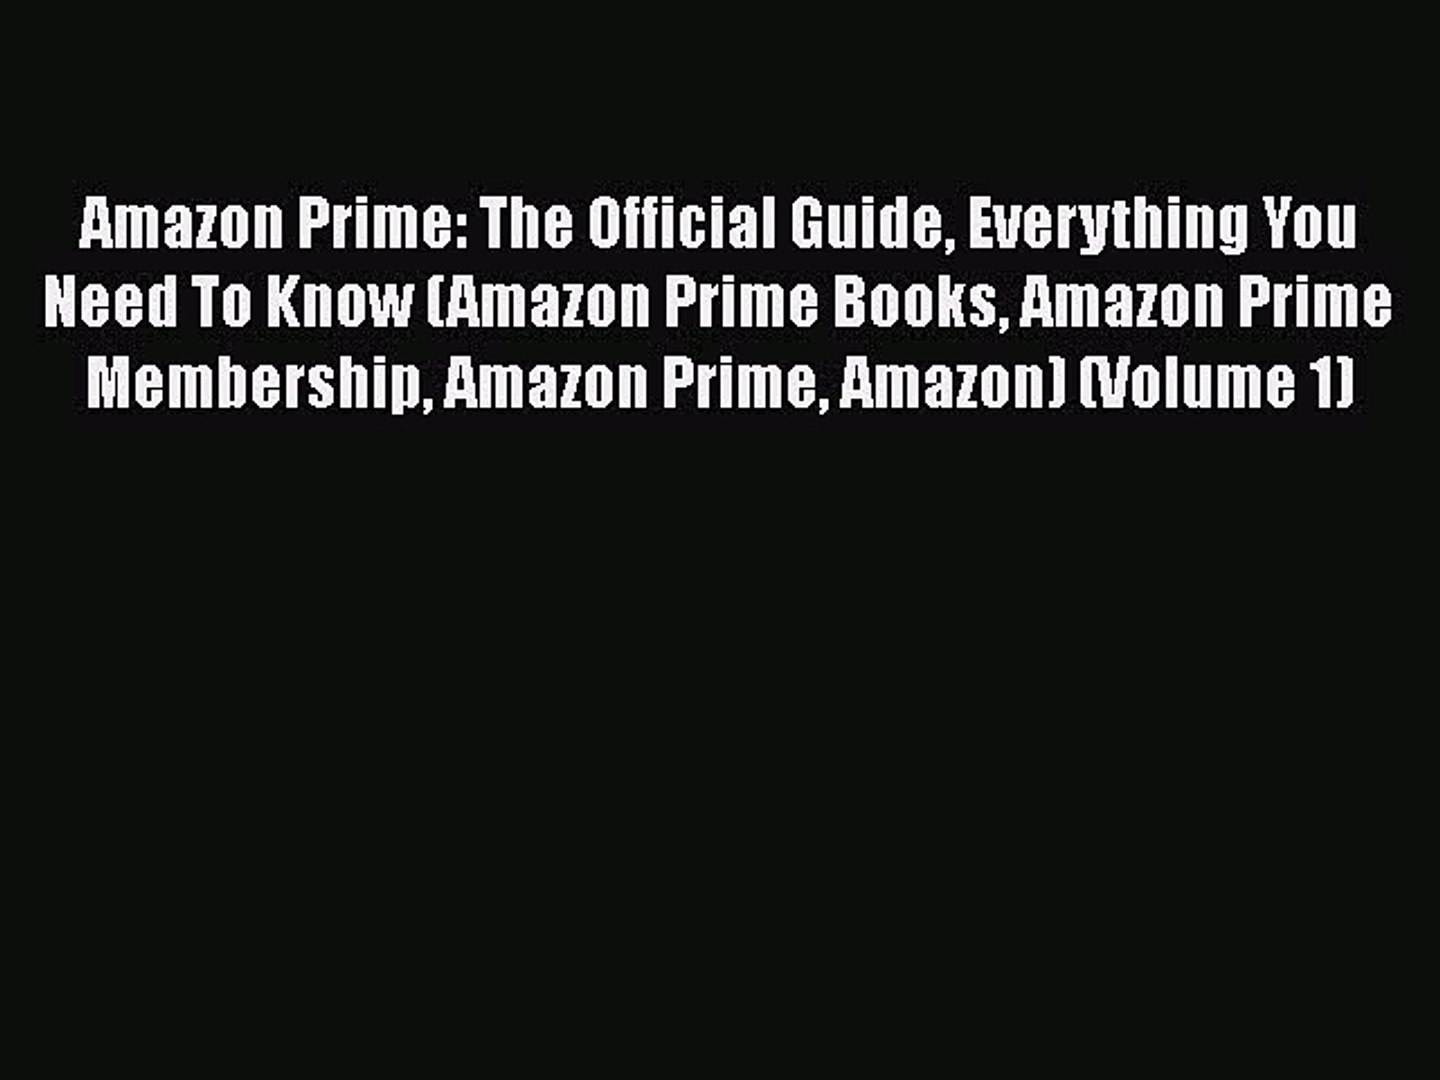 Download Amazon Prime: The Official Guide Everything You Need To Know (Amazon Prime Books Amazon